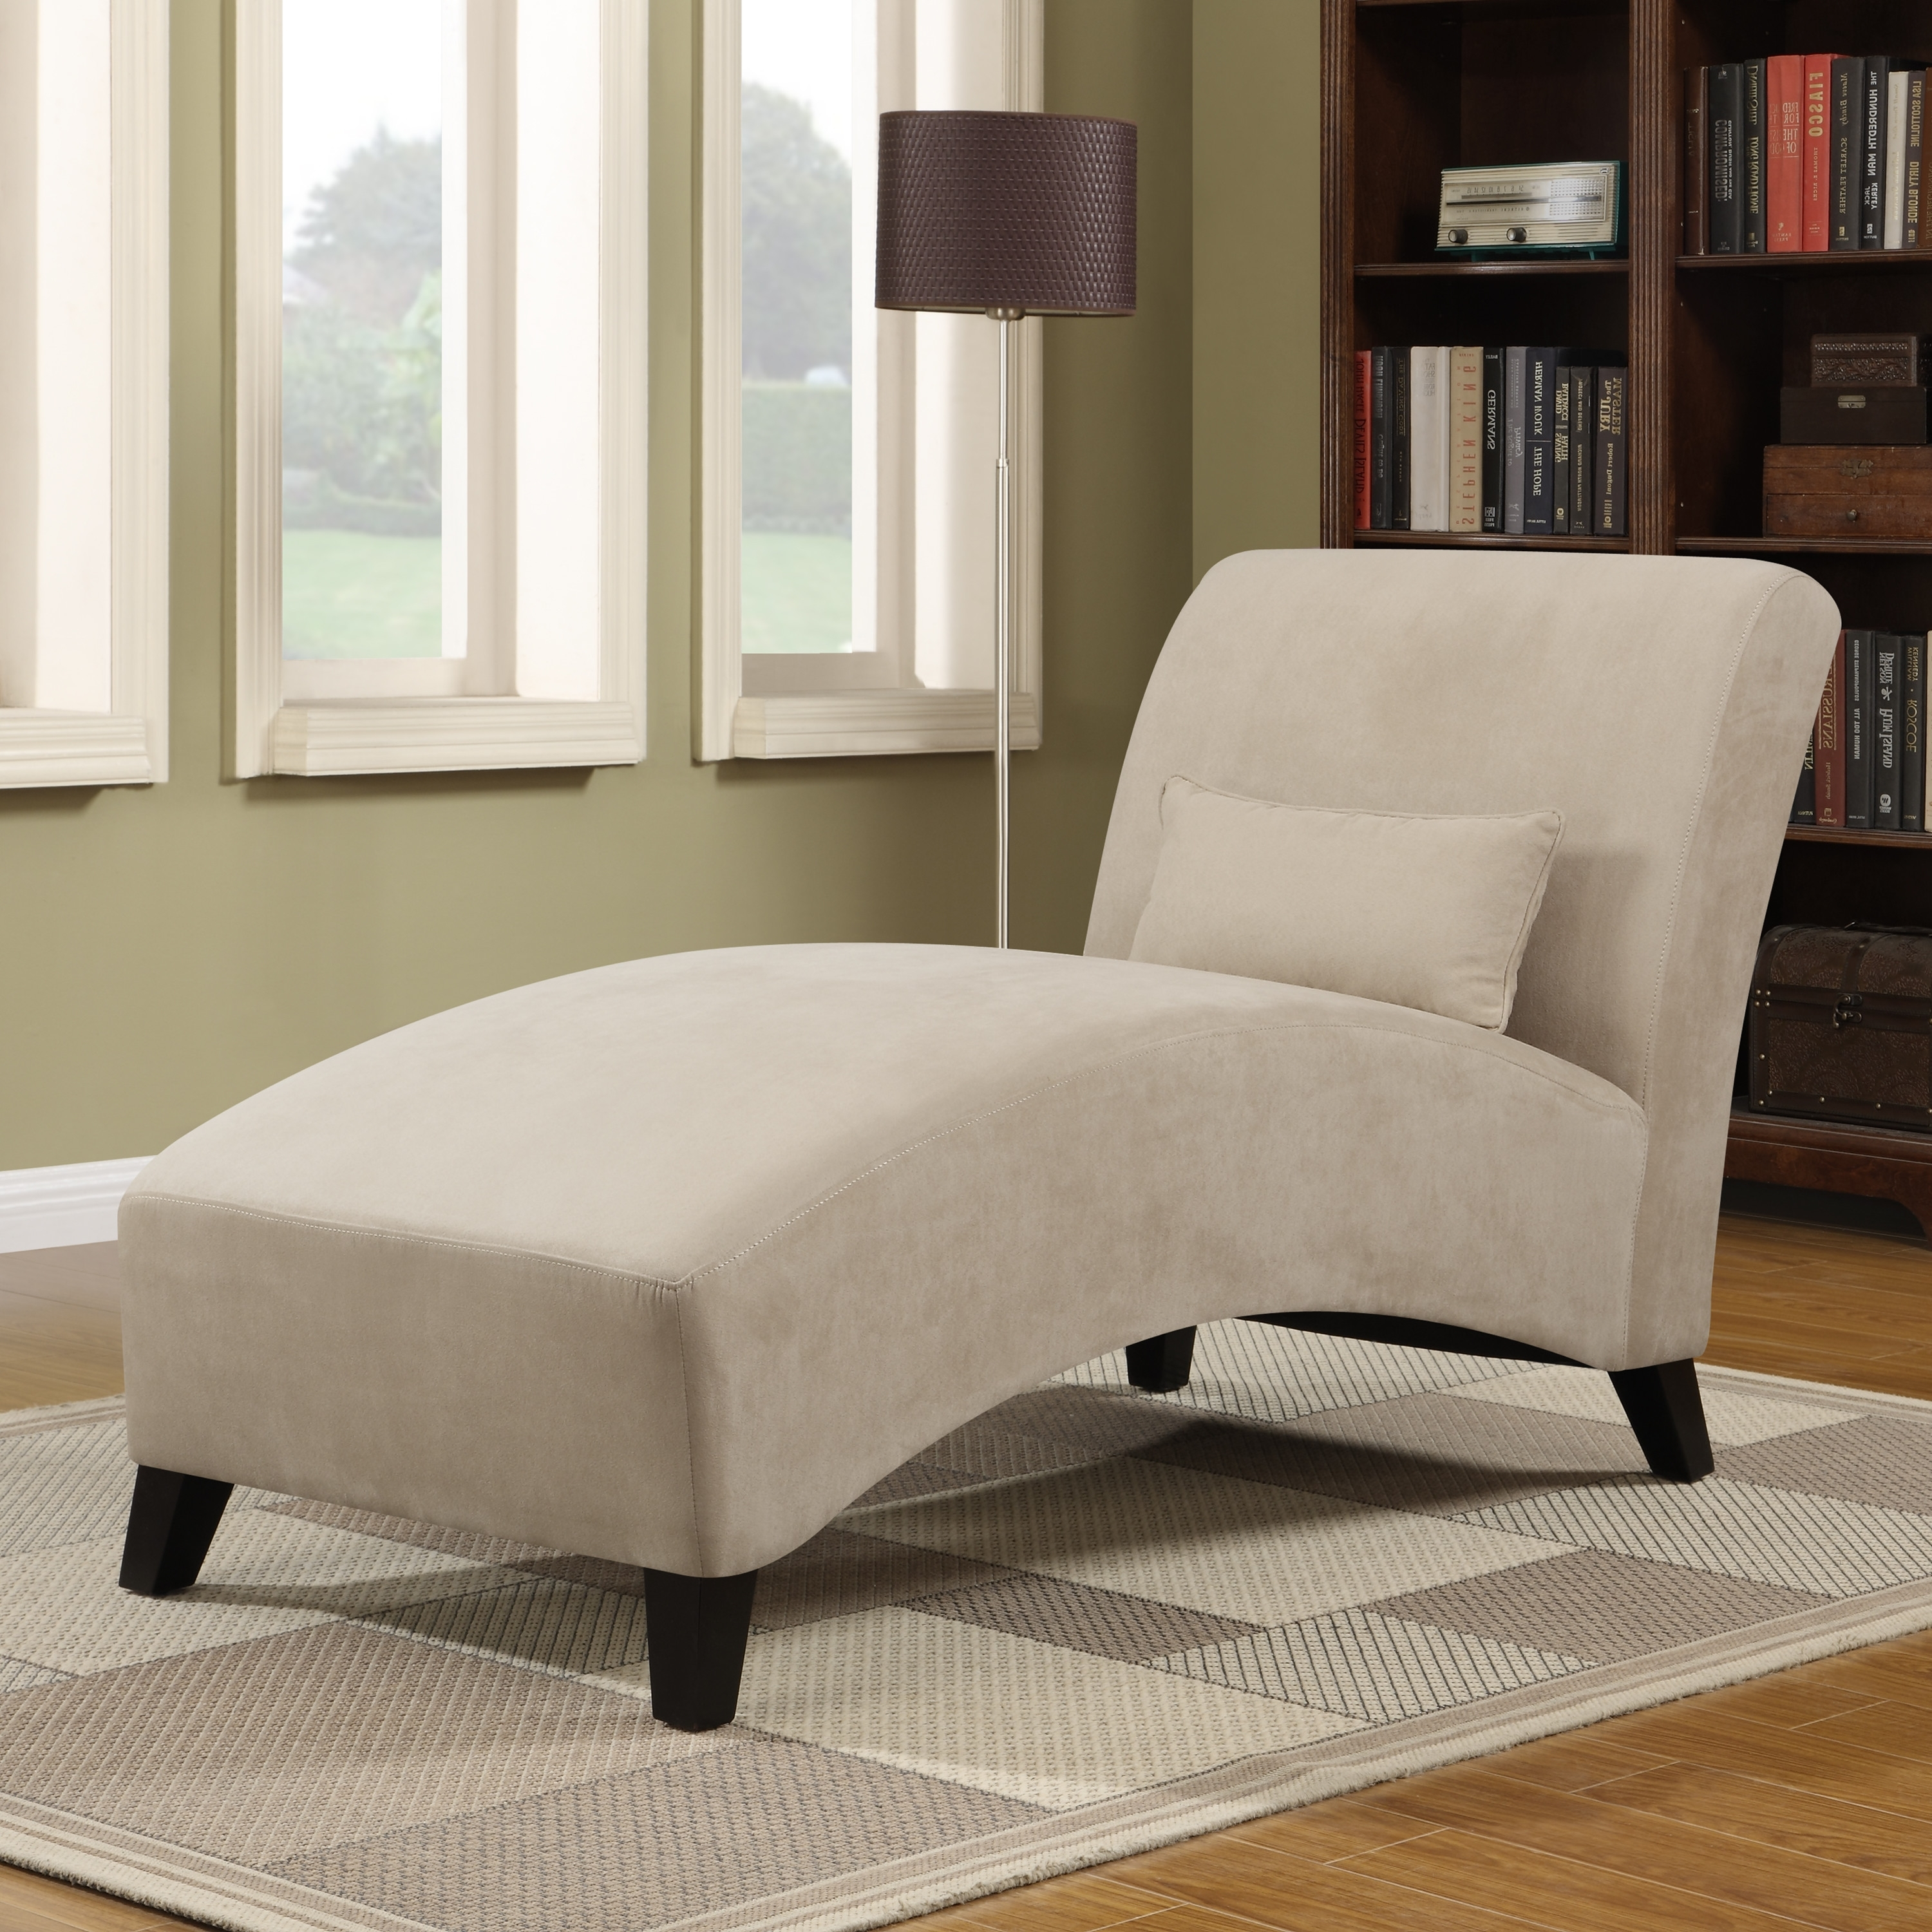 Widely Used Furniture: Microfiber Chaise Lounge For Comfortable Sofa Design With Comfy Chaise Lounges (View 3 of 15)